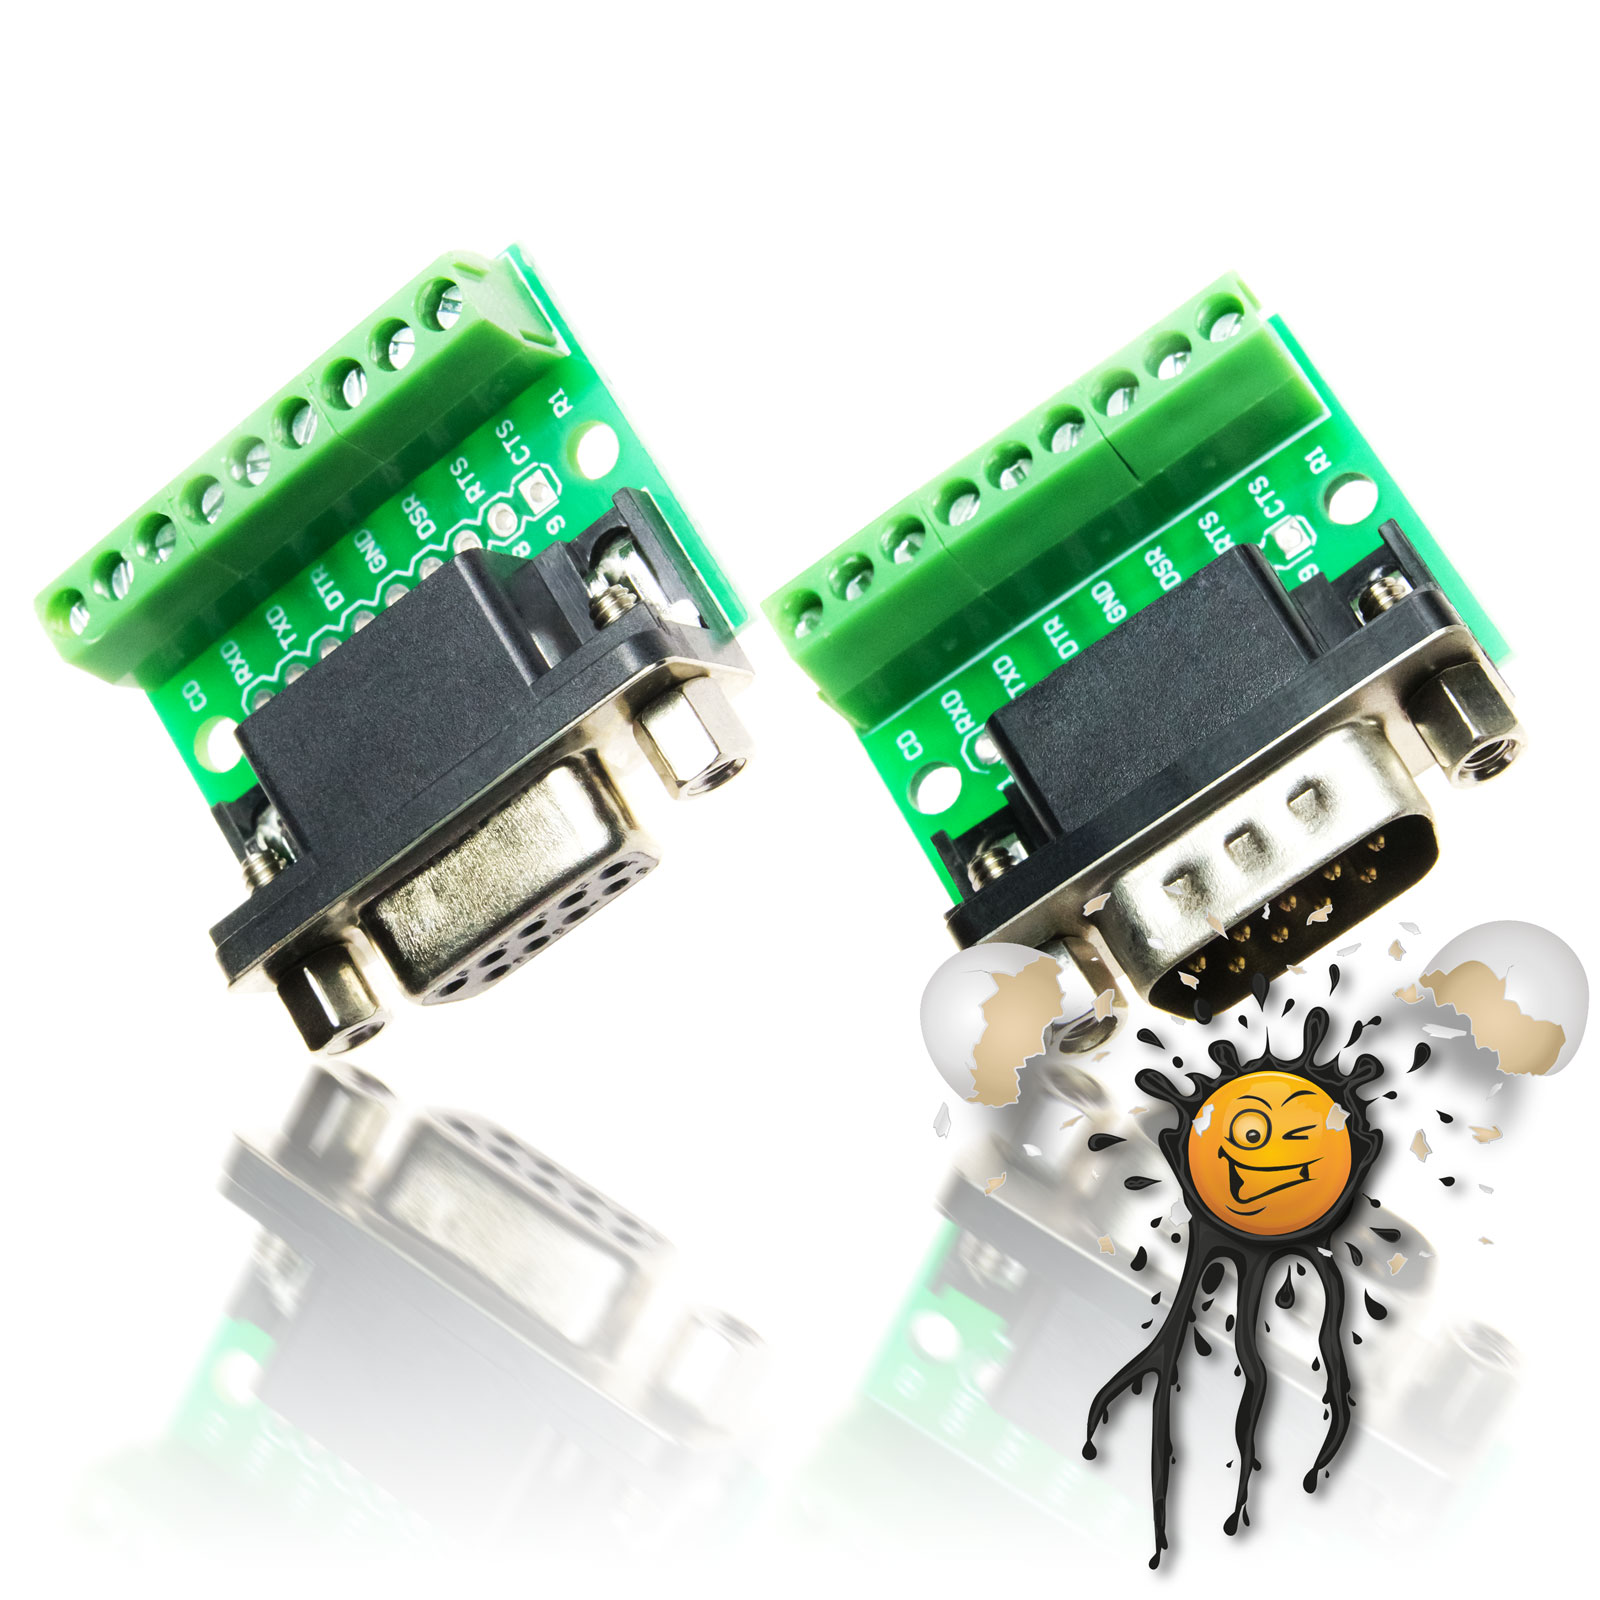 Serial UART RS232 DB9 Adapter